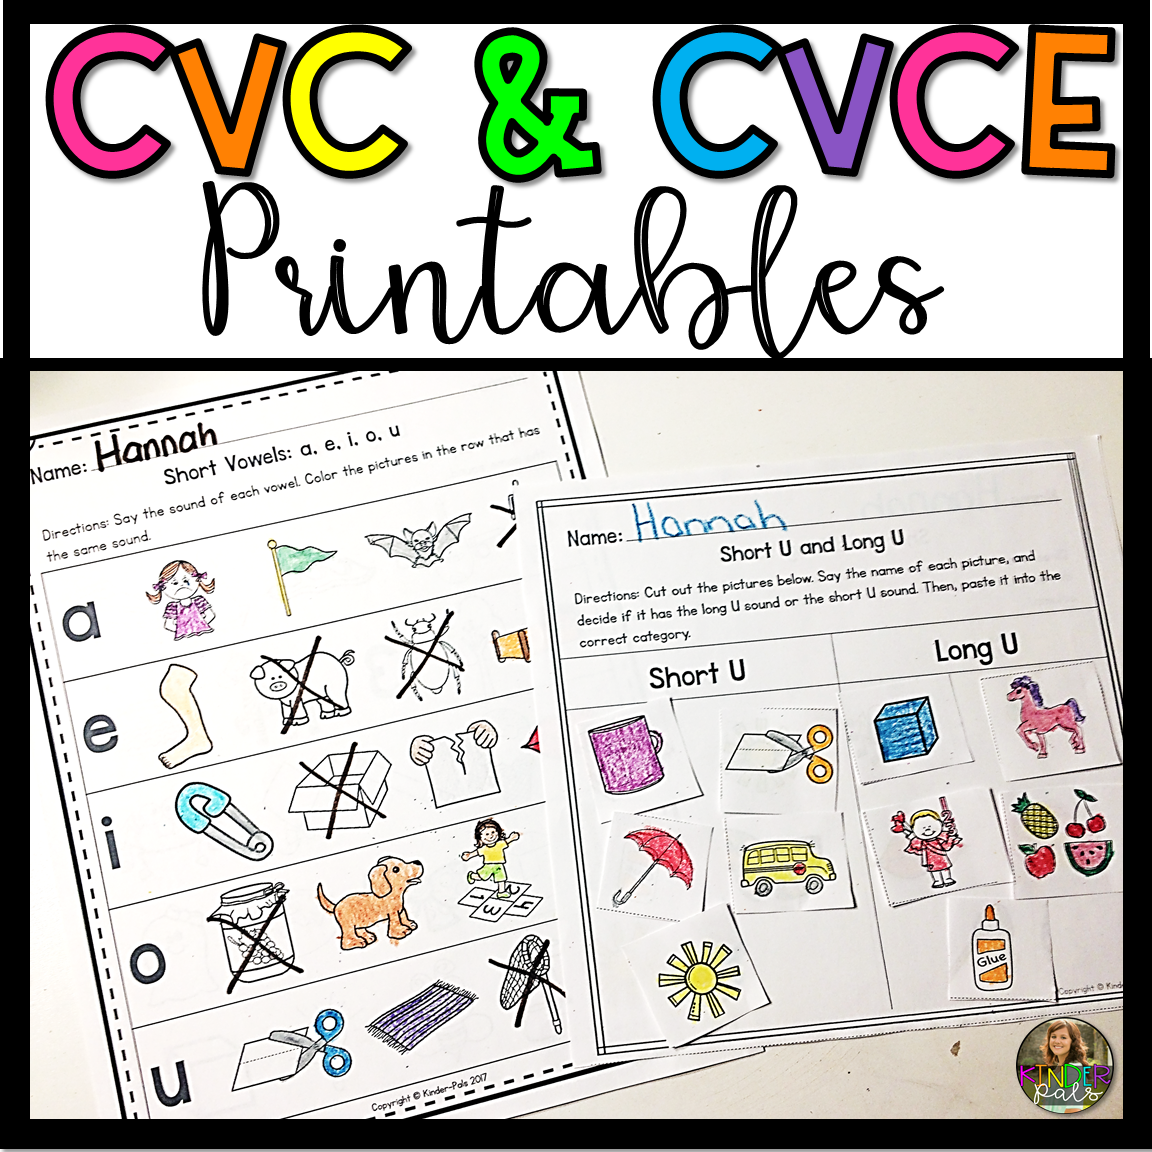 Cvc And Cvce Worksheets From Kinder Pals